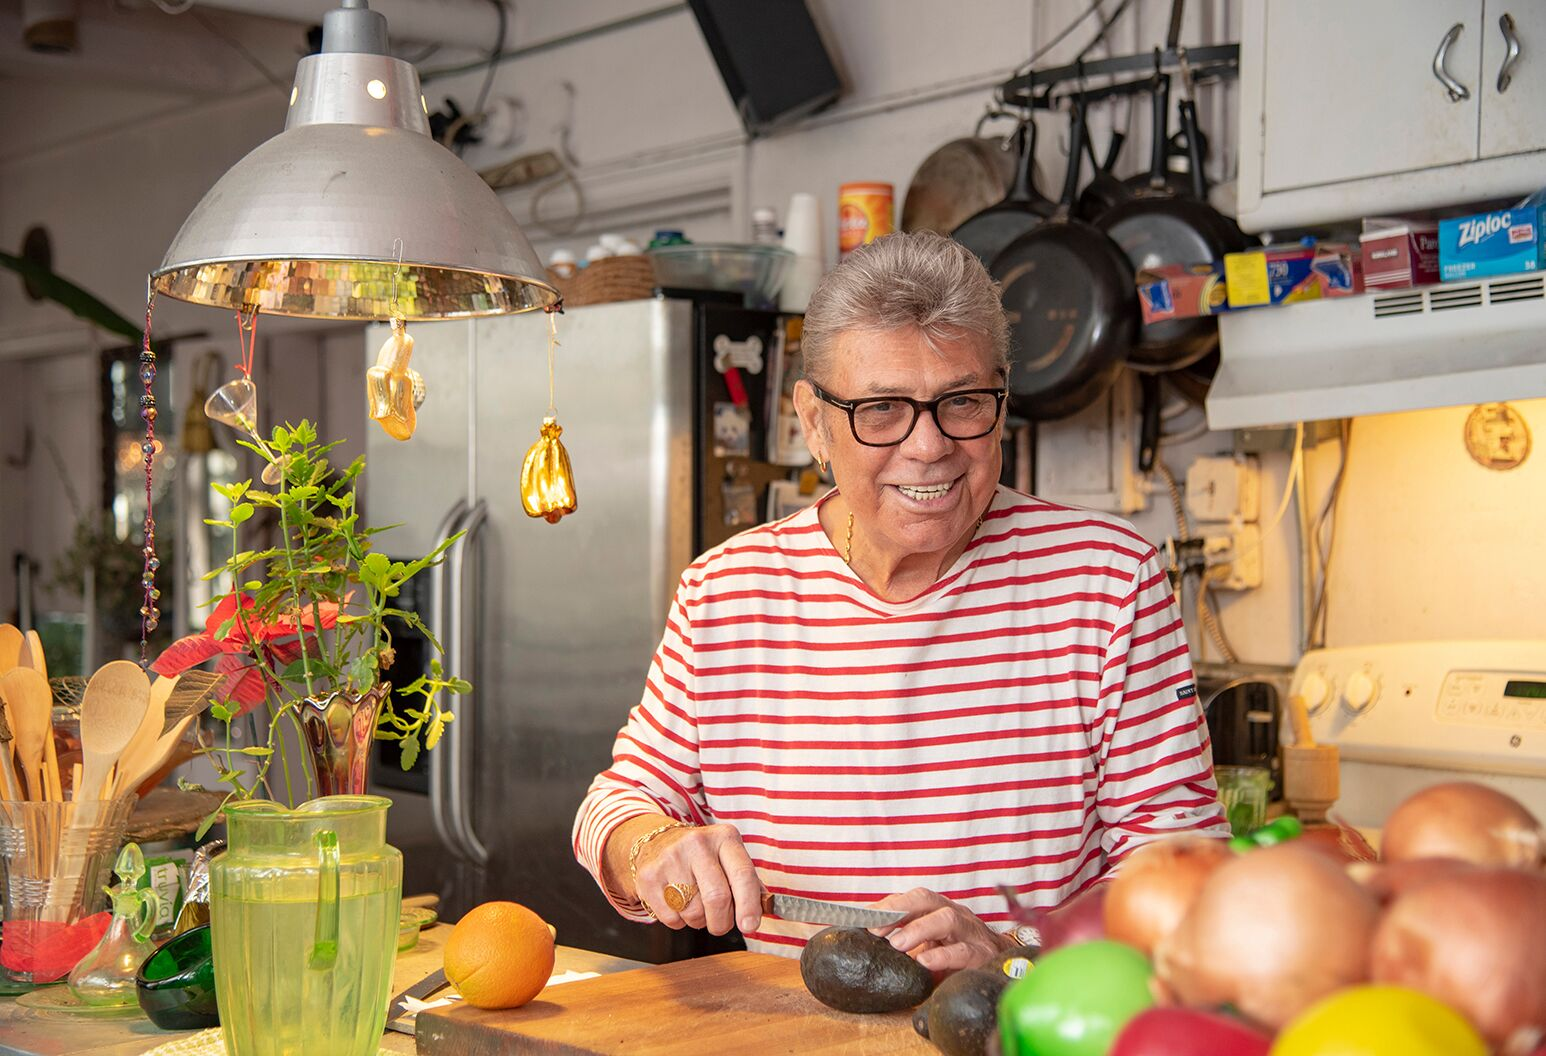 A smiling man in his late 70s slicing an avocado in his kitchen